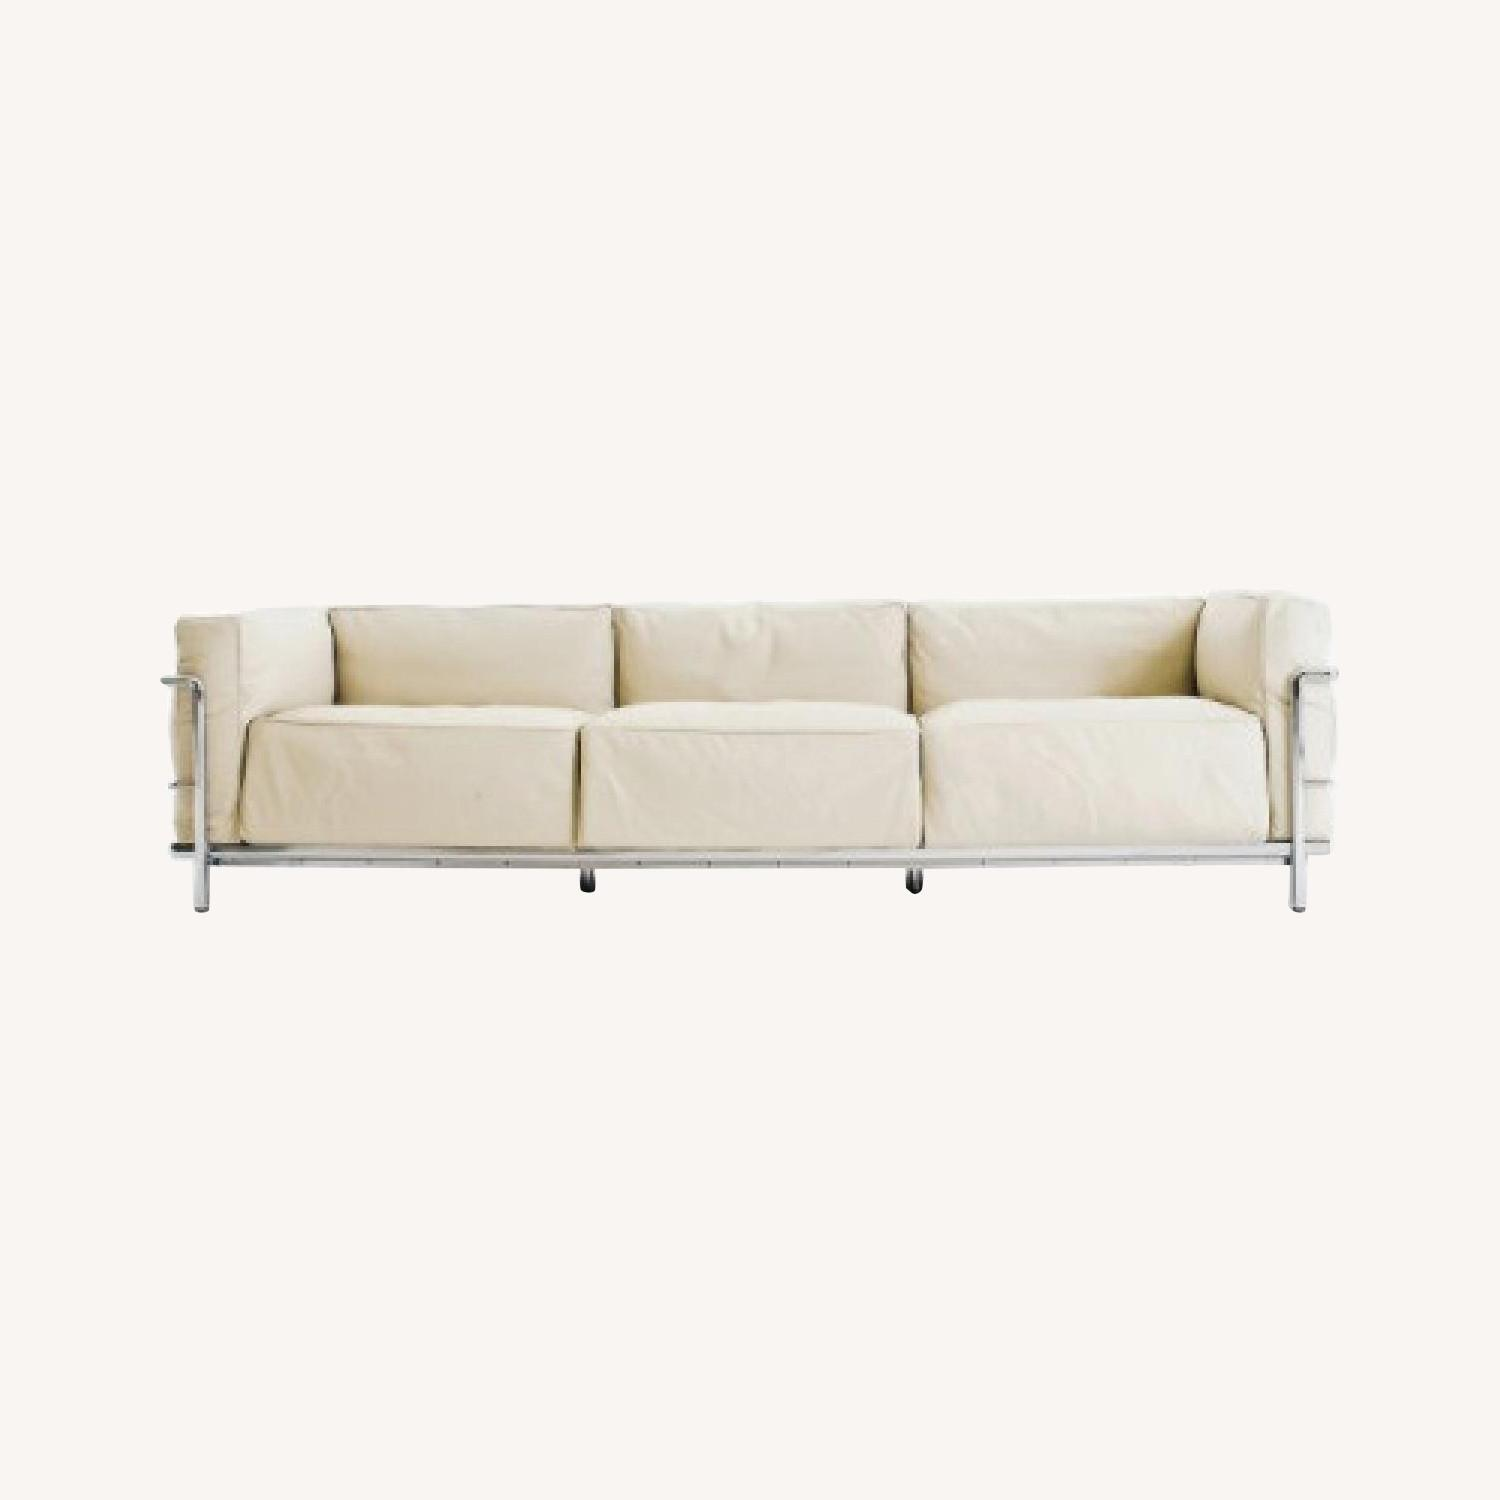 Design within Reach 3 Seat Leather Sofa - image-0